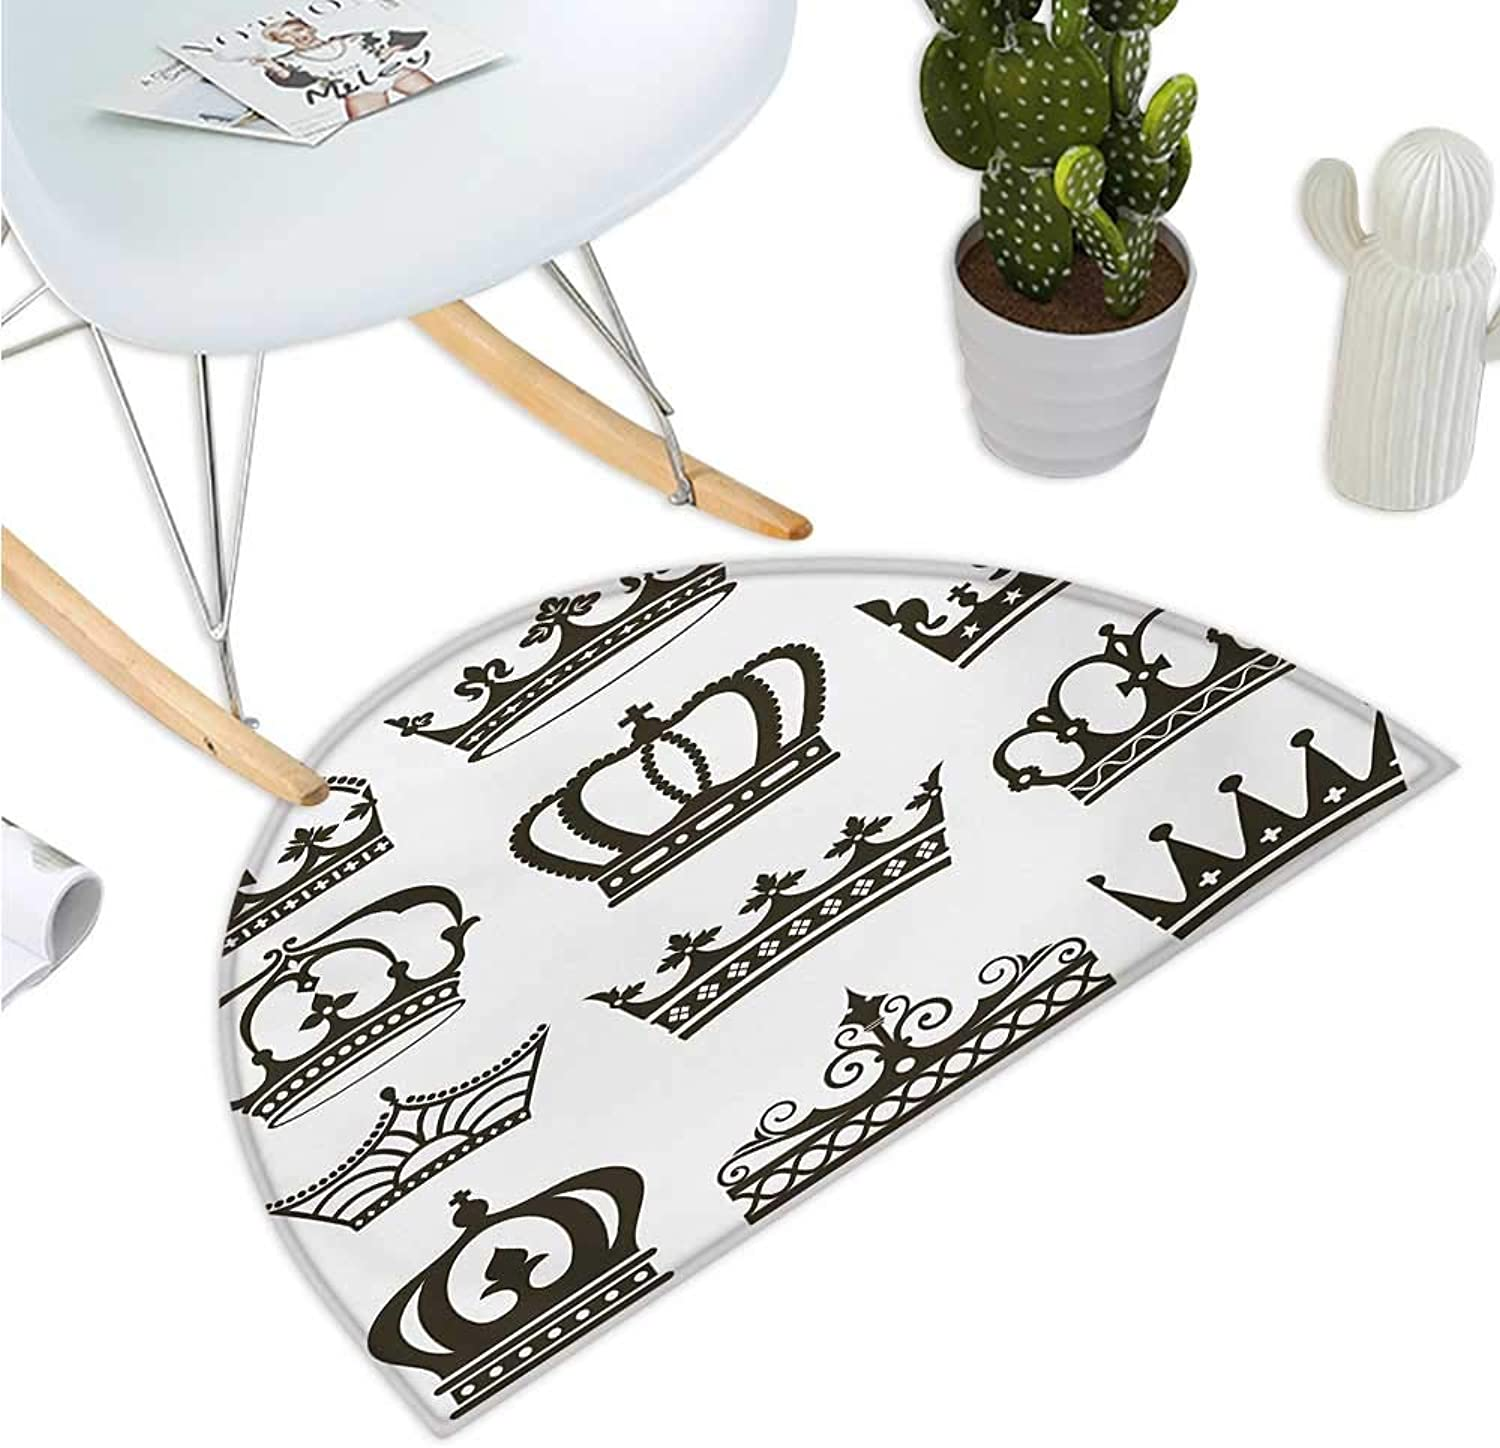 King Semicircular Cushion Symbol of Royalty Crowns Tiaras for Reign Noble Queen Prince Princess Cartoon Desgin Entry Door Mat H 43.3  xD 64.9  Army Green